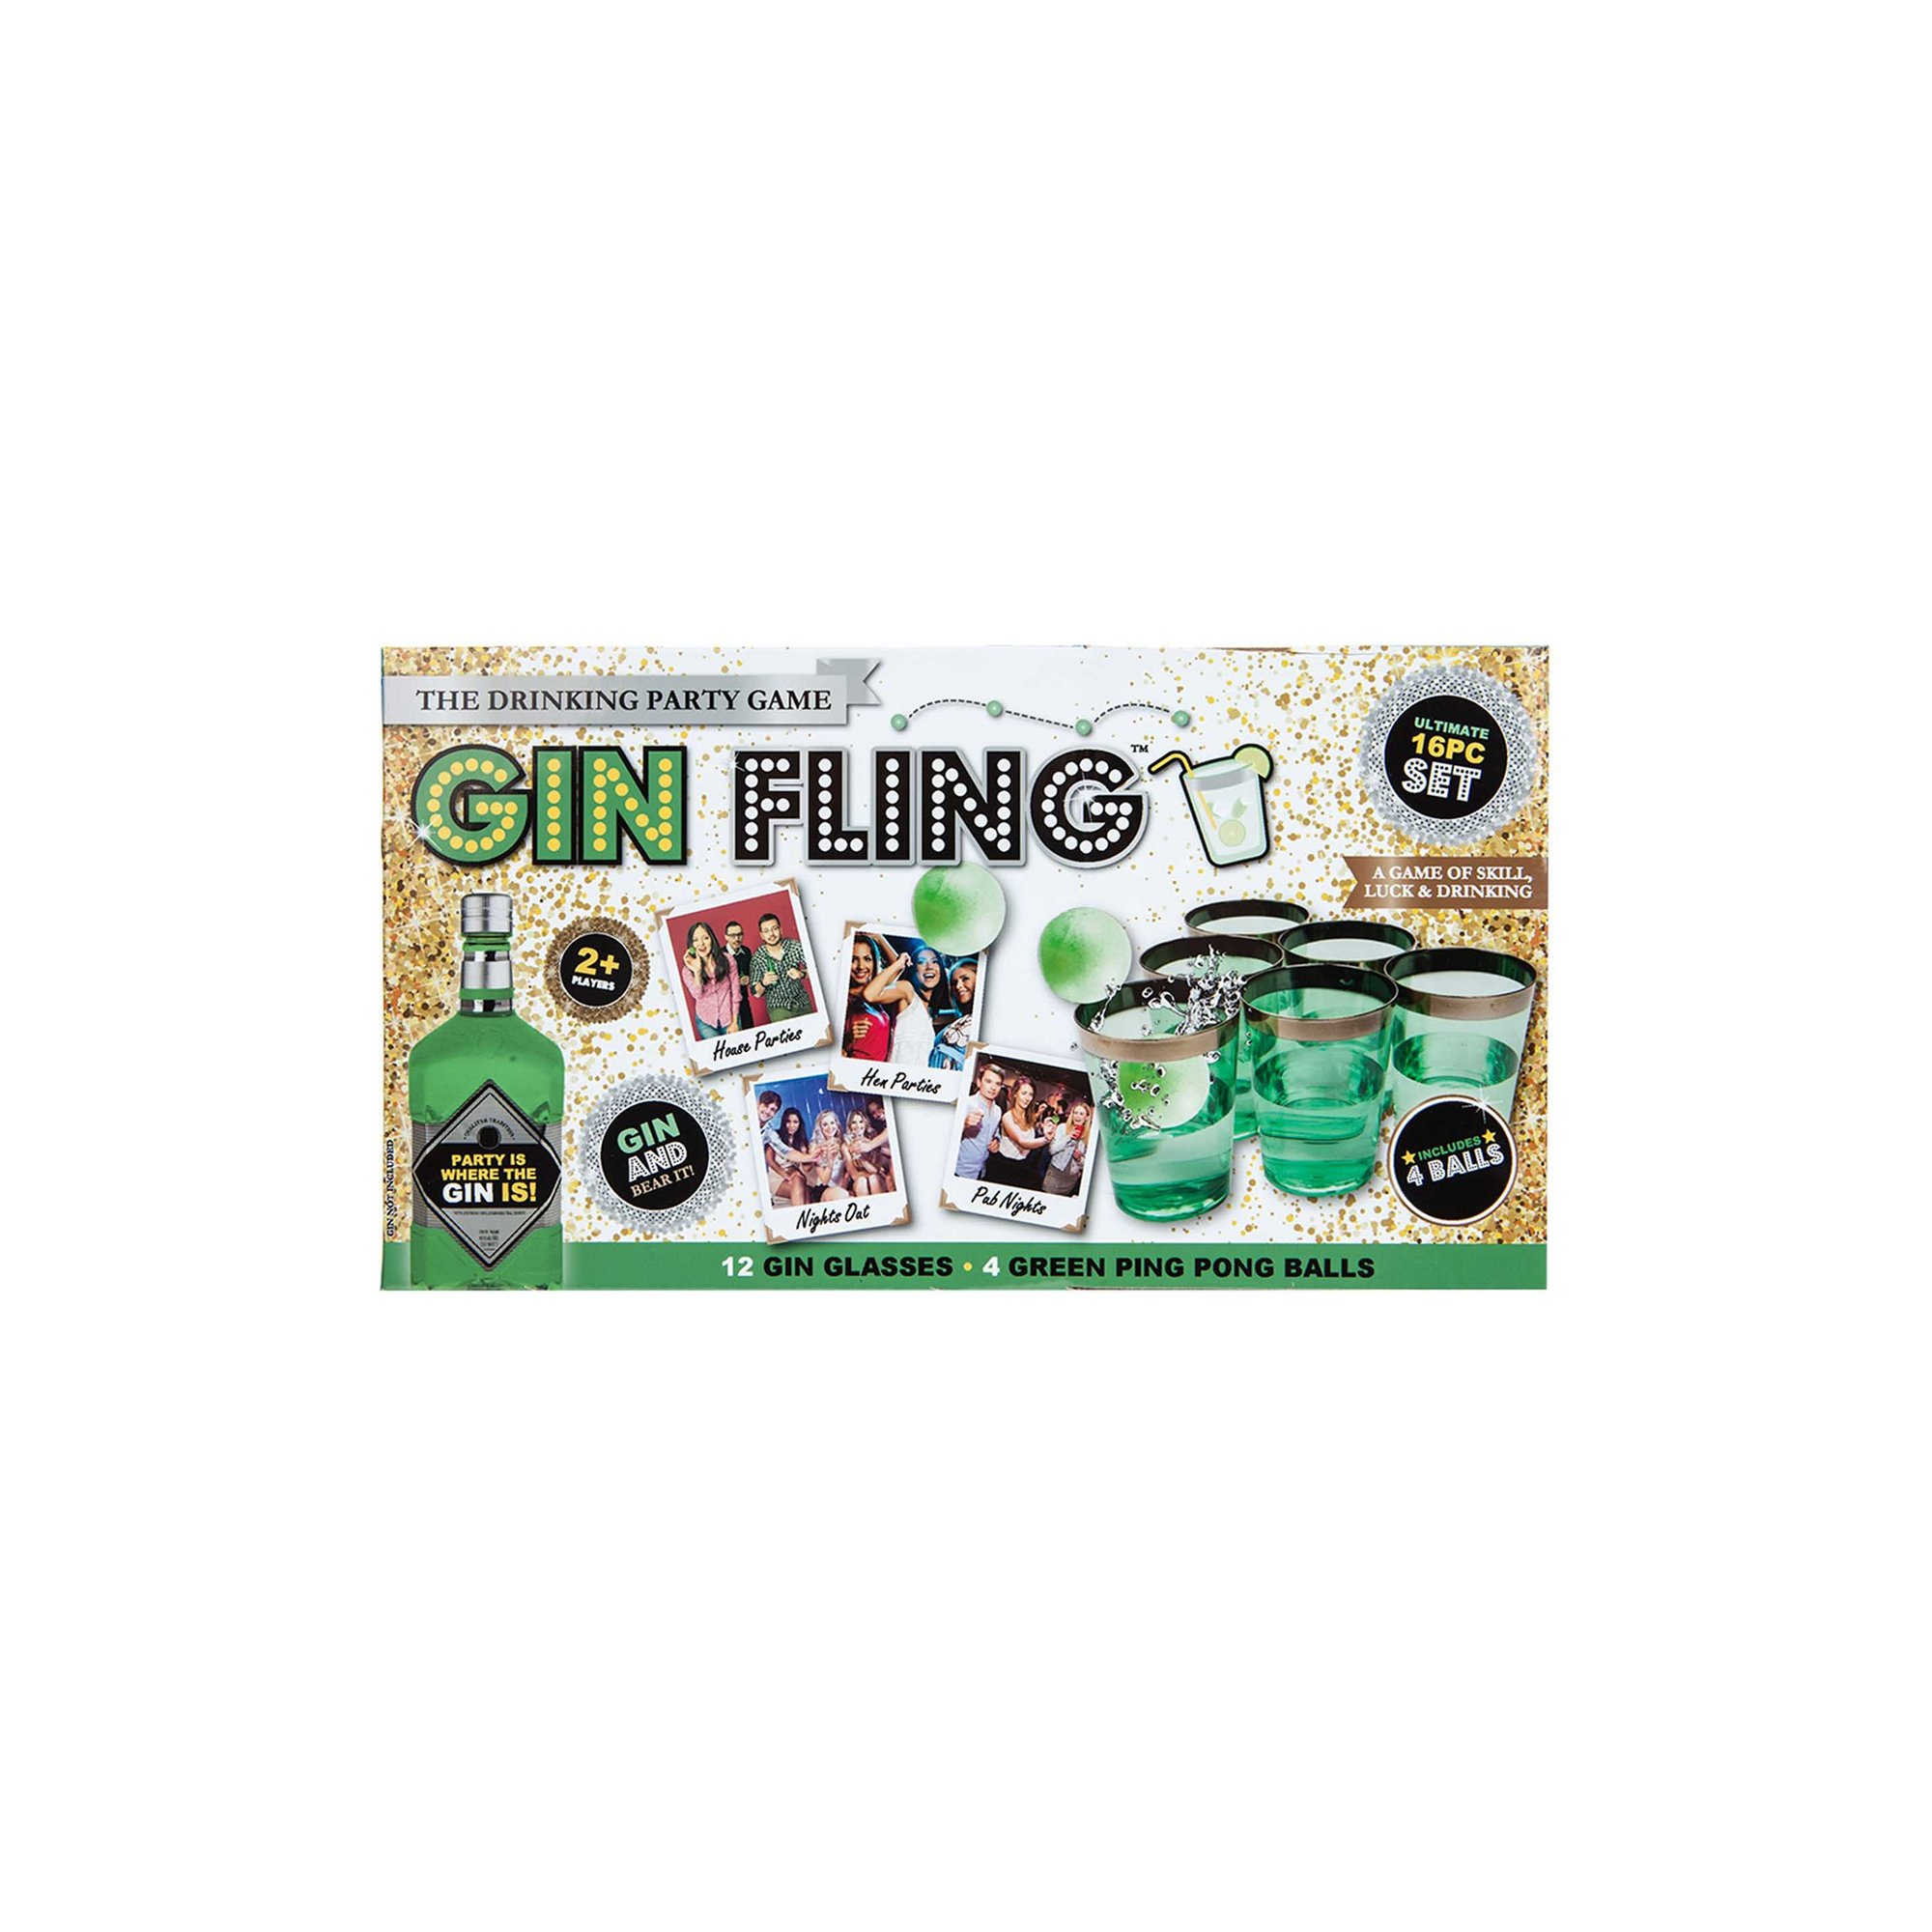 Image of Gin Fling Party Drinking Game